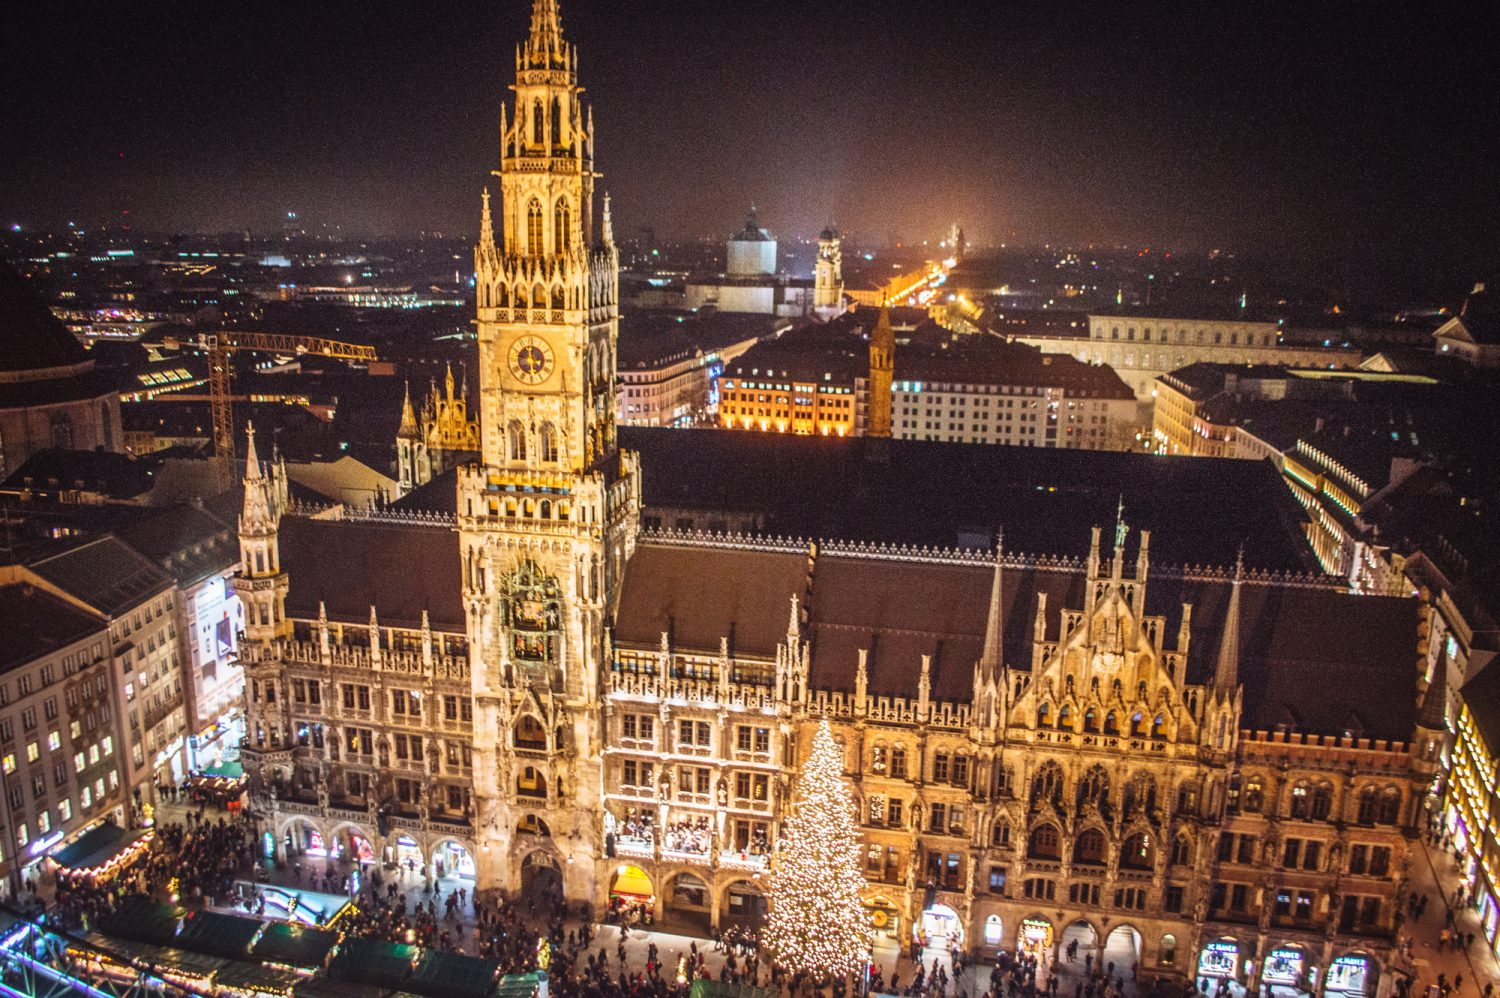 da6099415 Munich Christmas Markets 2019 Guide: Where to Go, What to Eat and What to  Buy